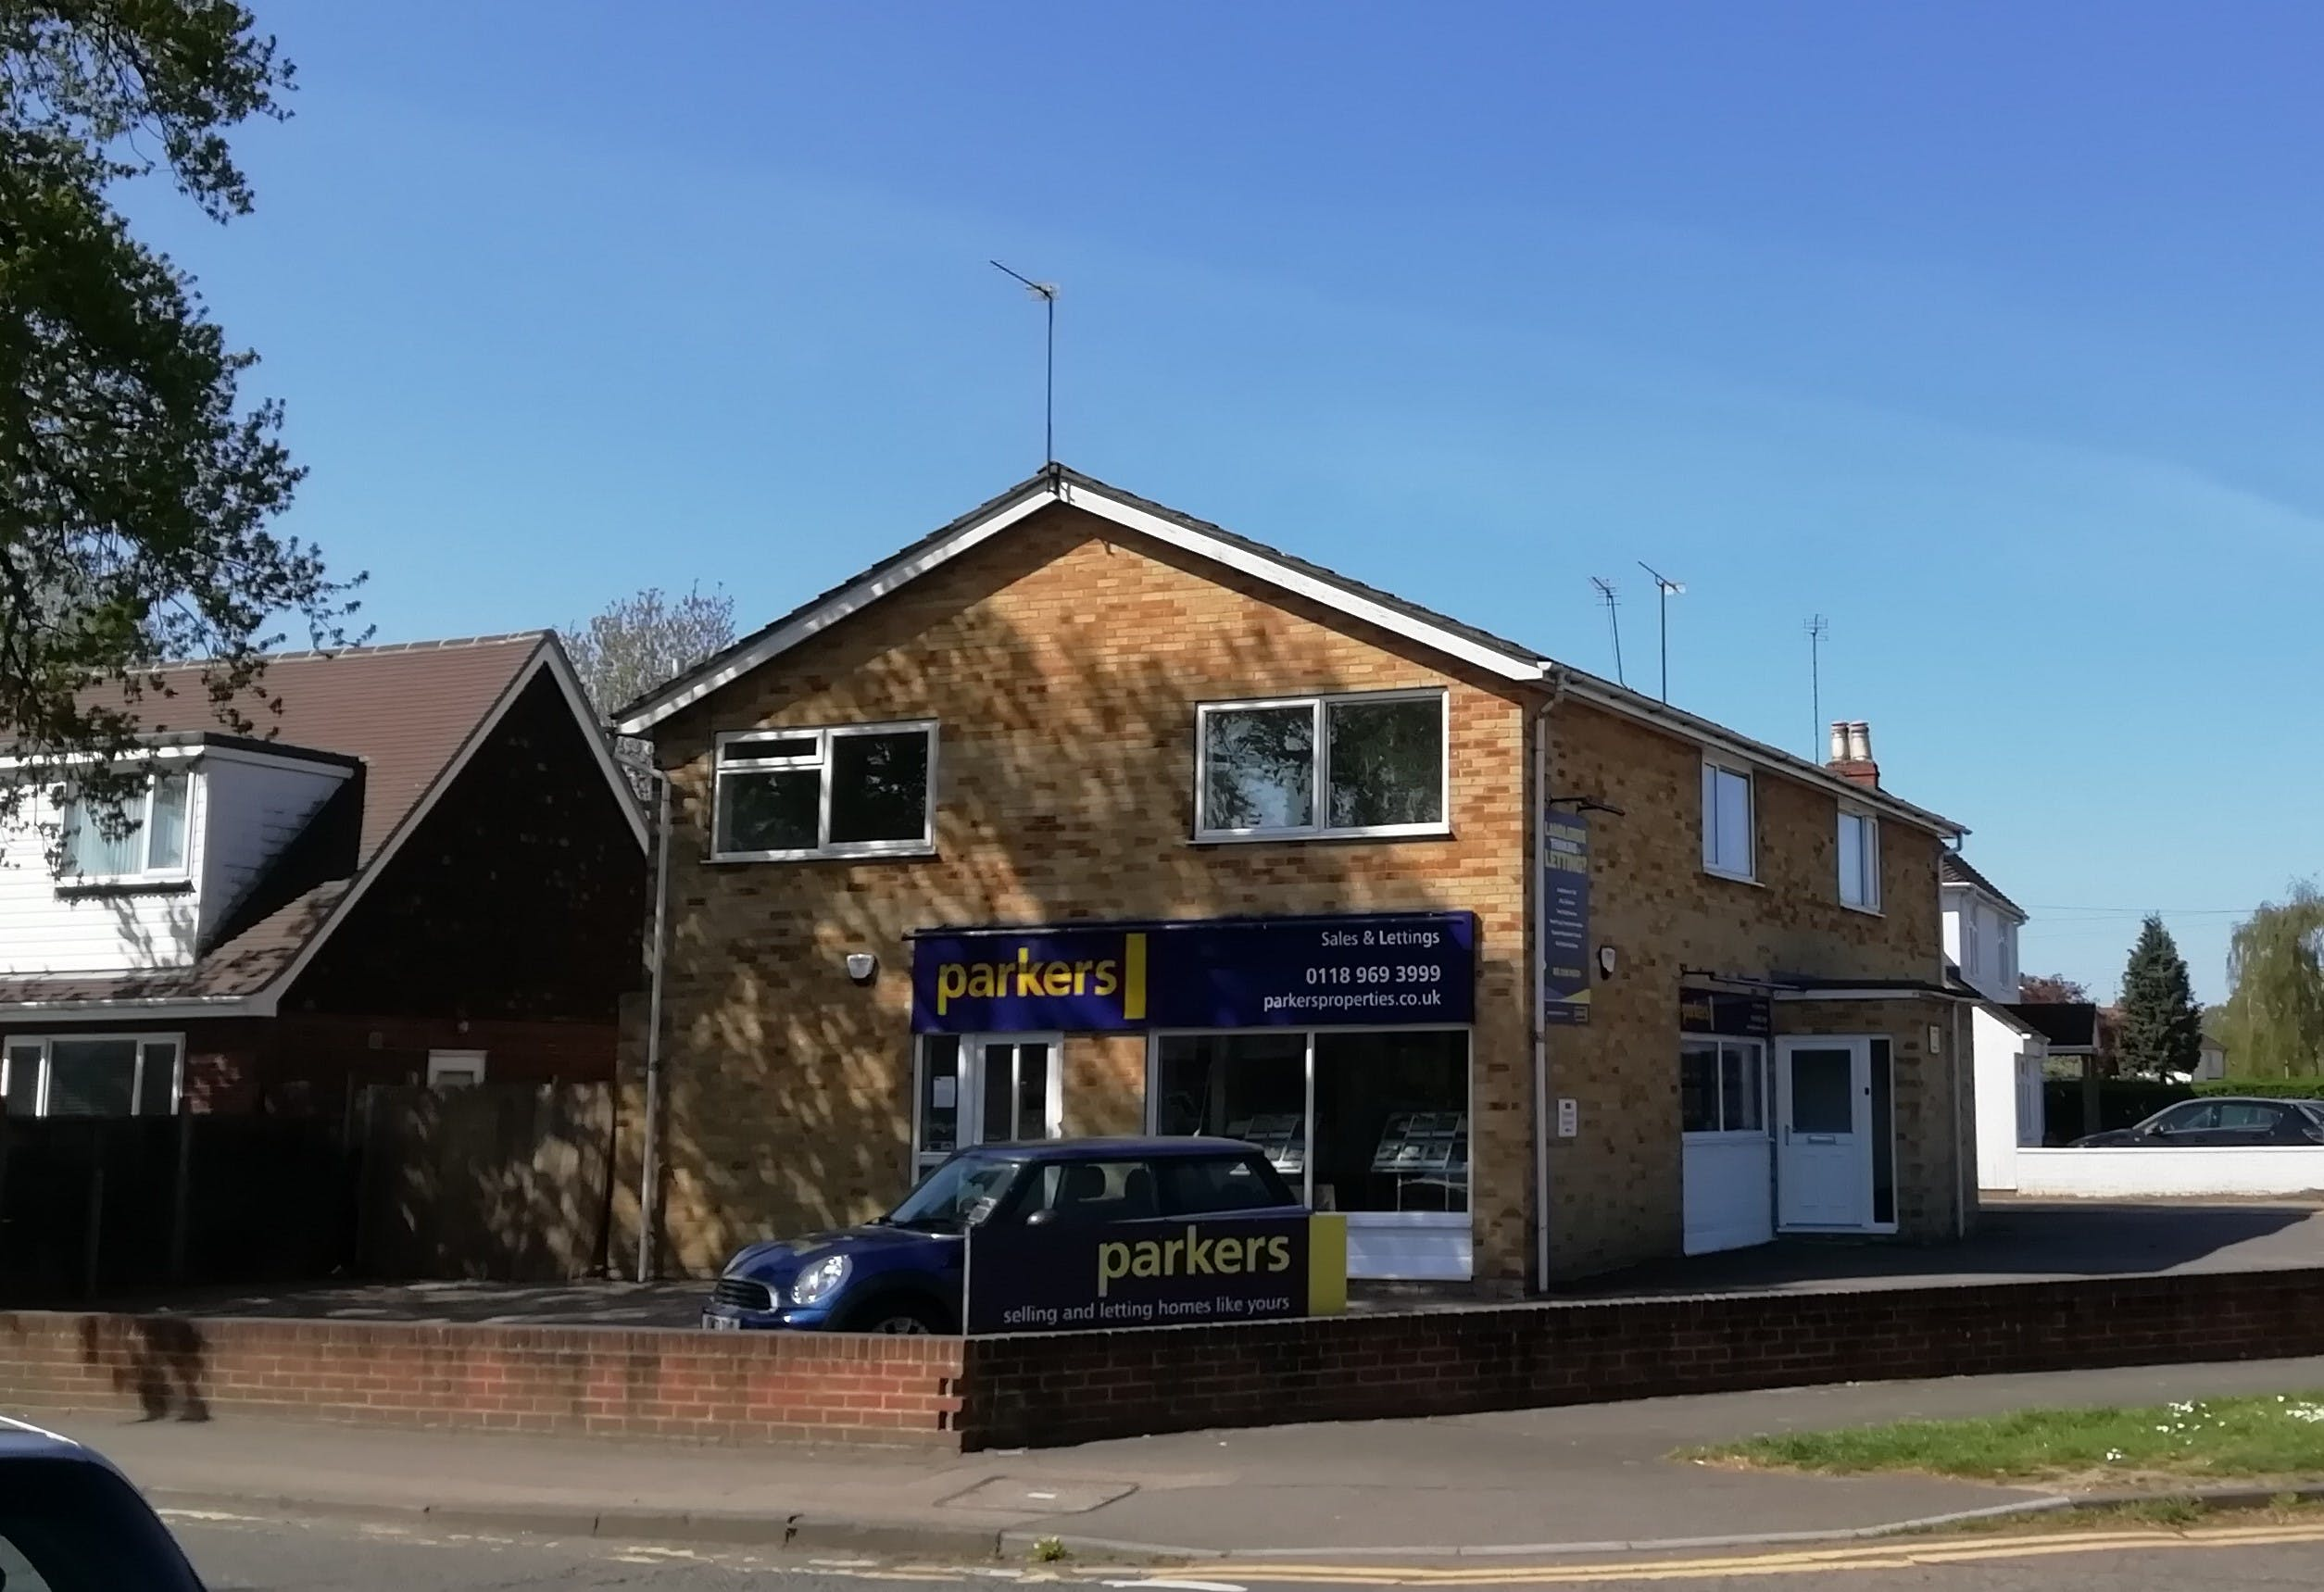 43 Crockhamwell Road, Reading, Investment For Sale - IMG_20200414_112239a.jpg